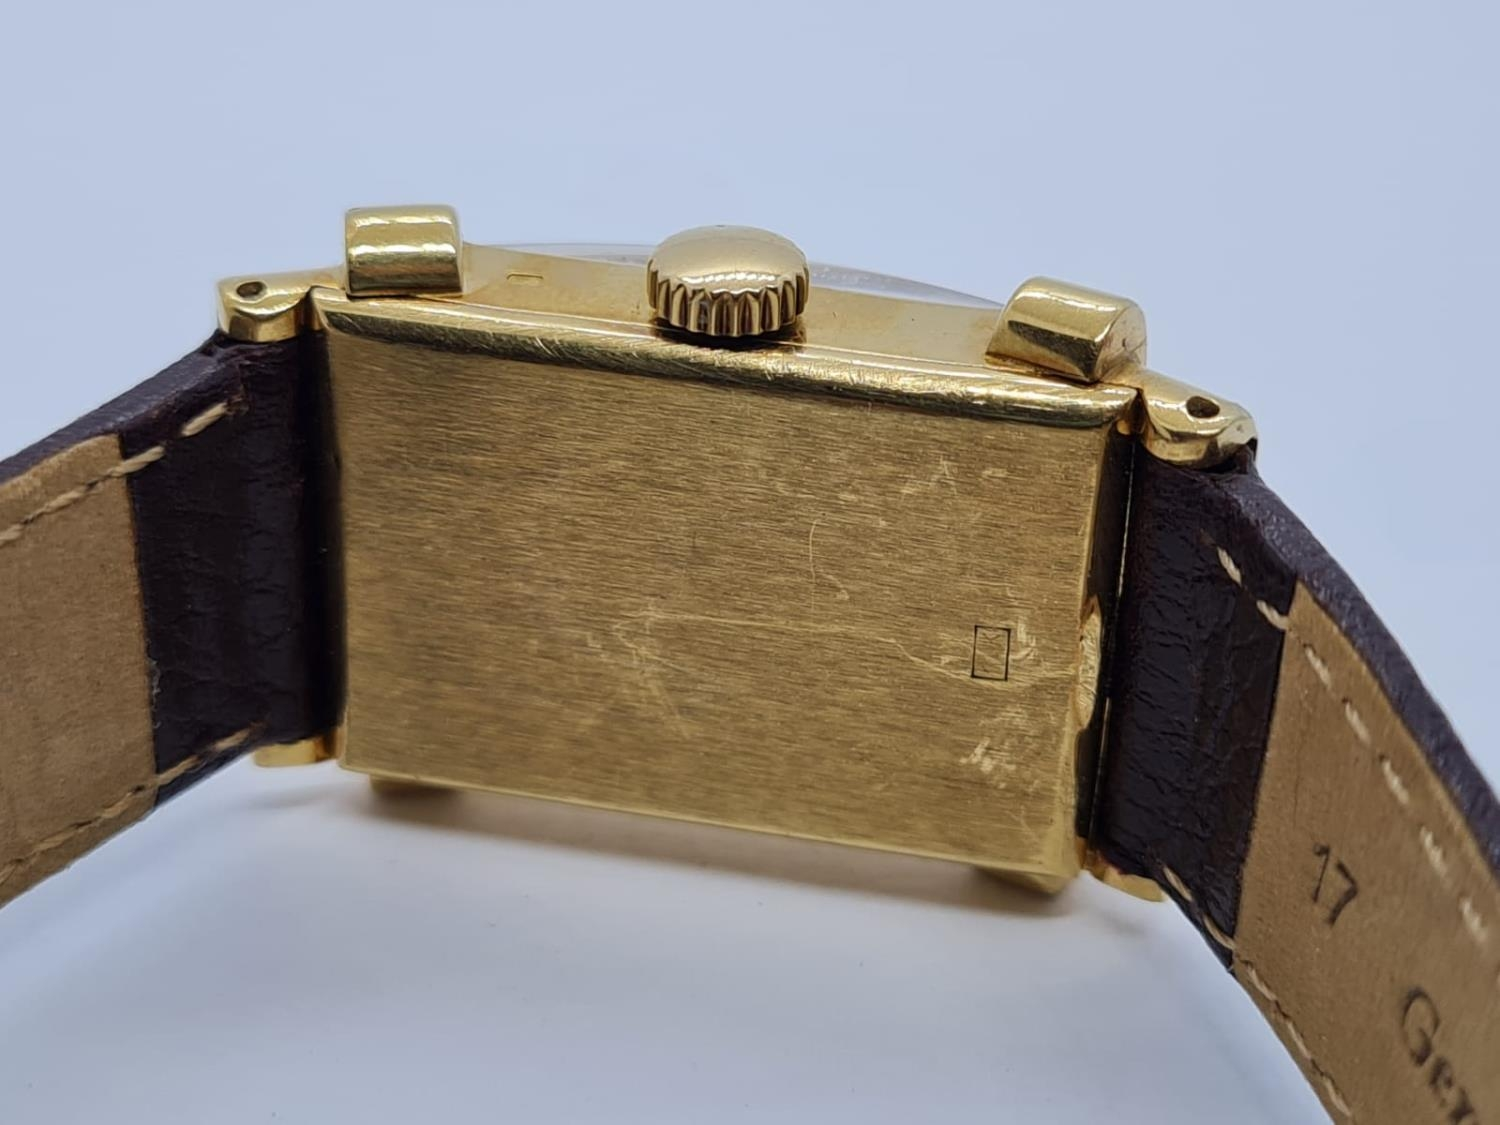 Patek Philippe Geneve WATCH tank style with rectangular face Case: 20x40mm. Brown Leather Strap. - Image 5 of 5